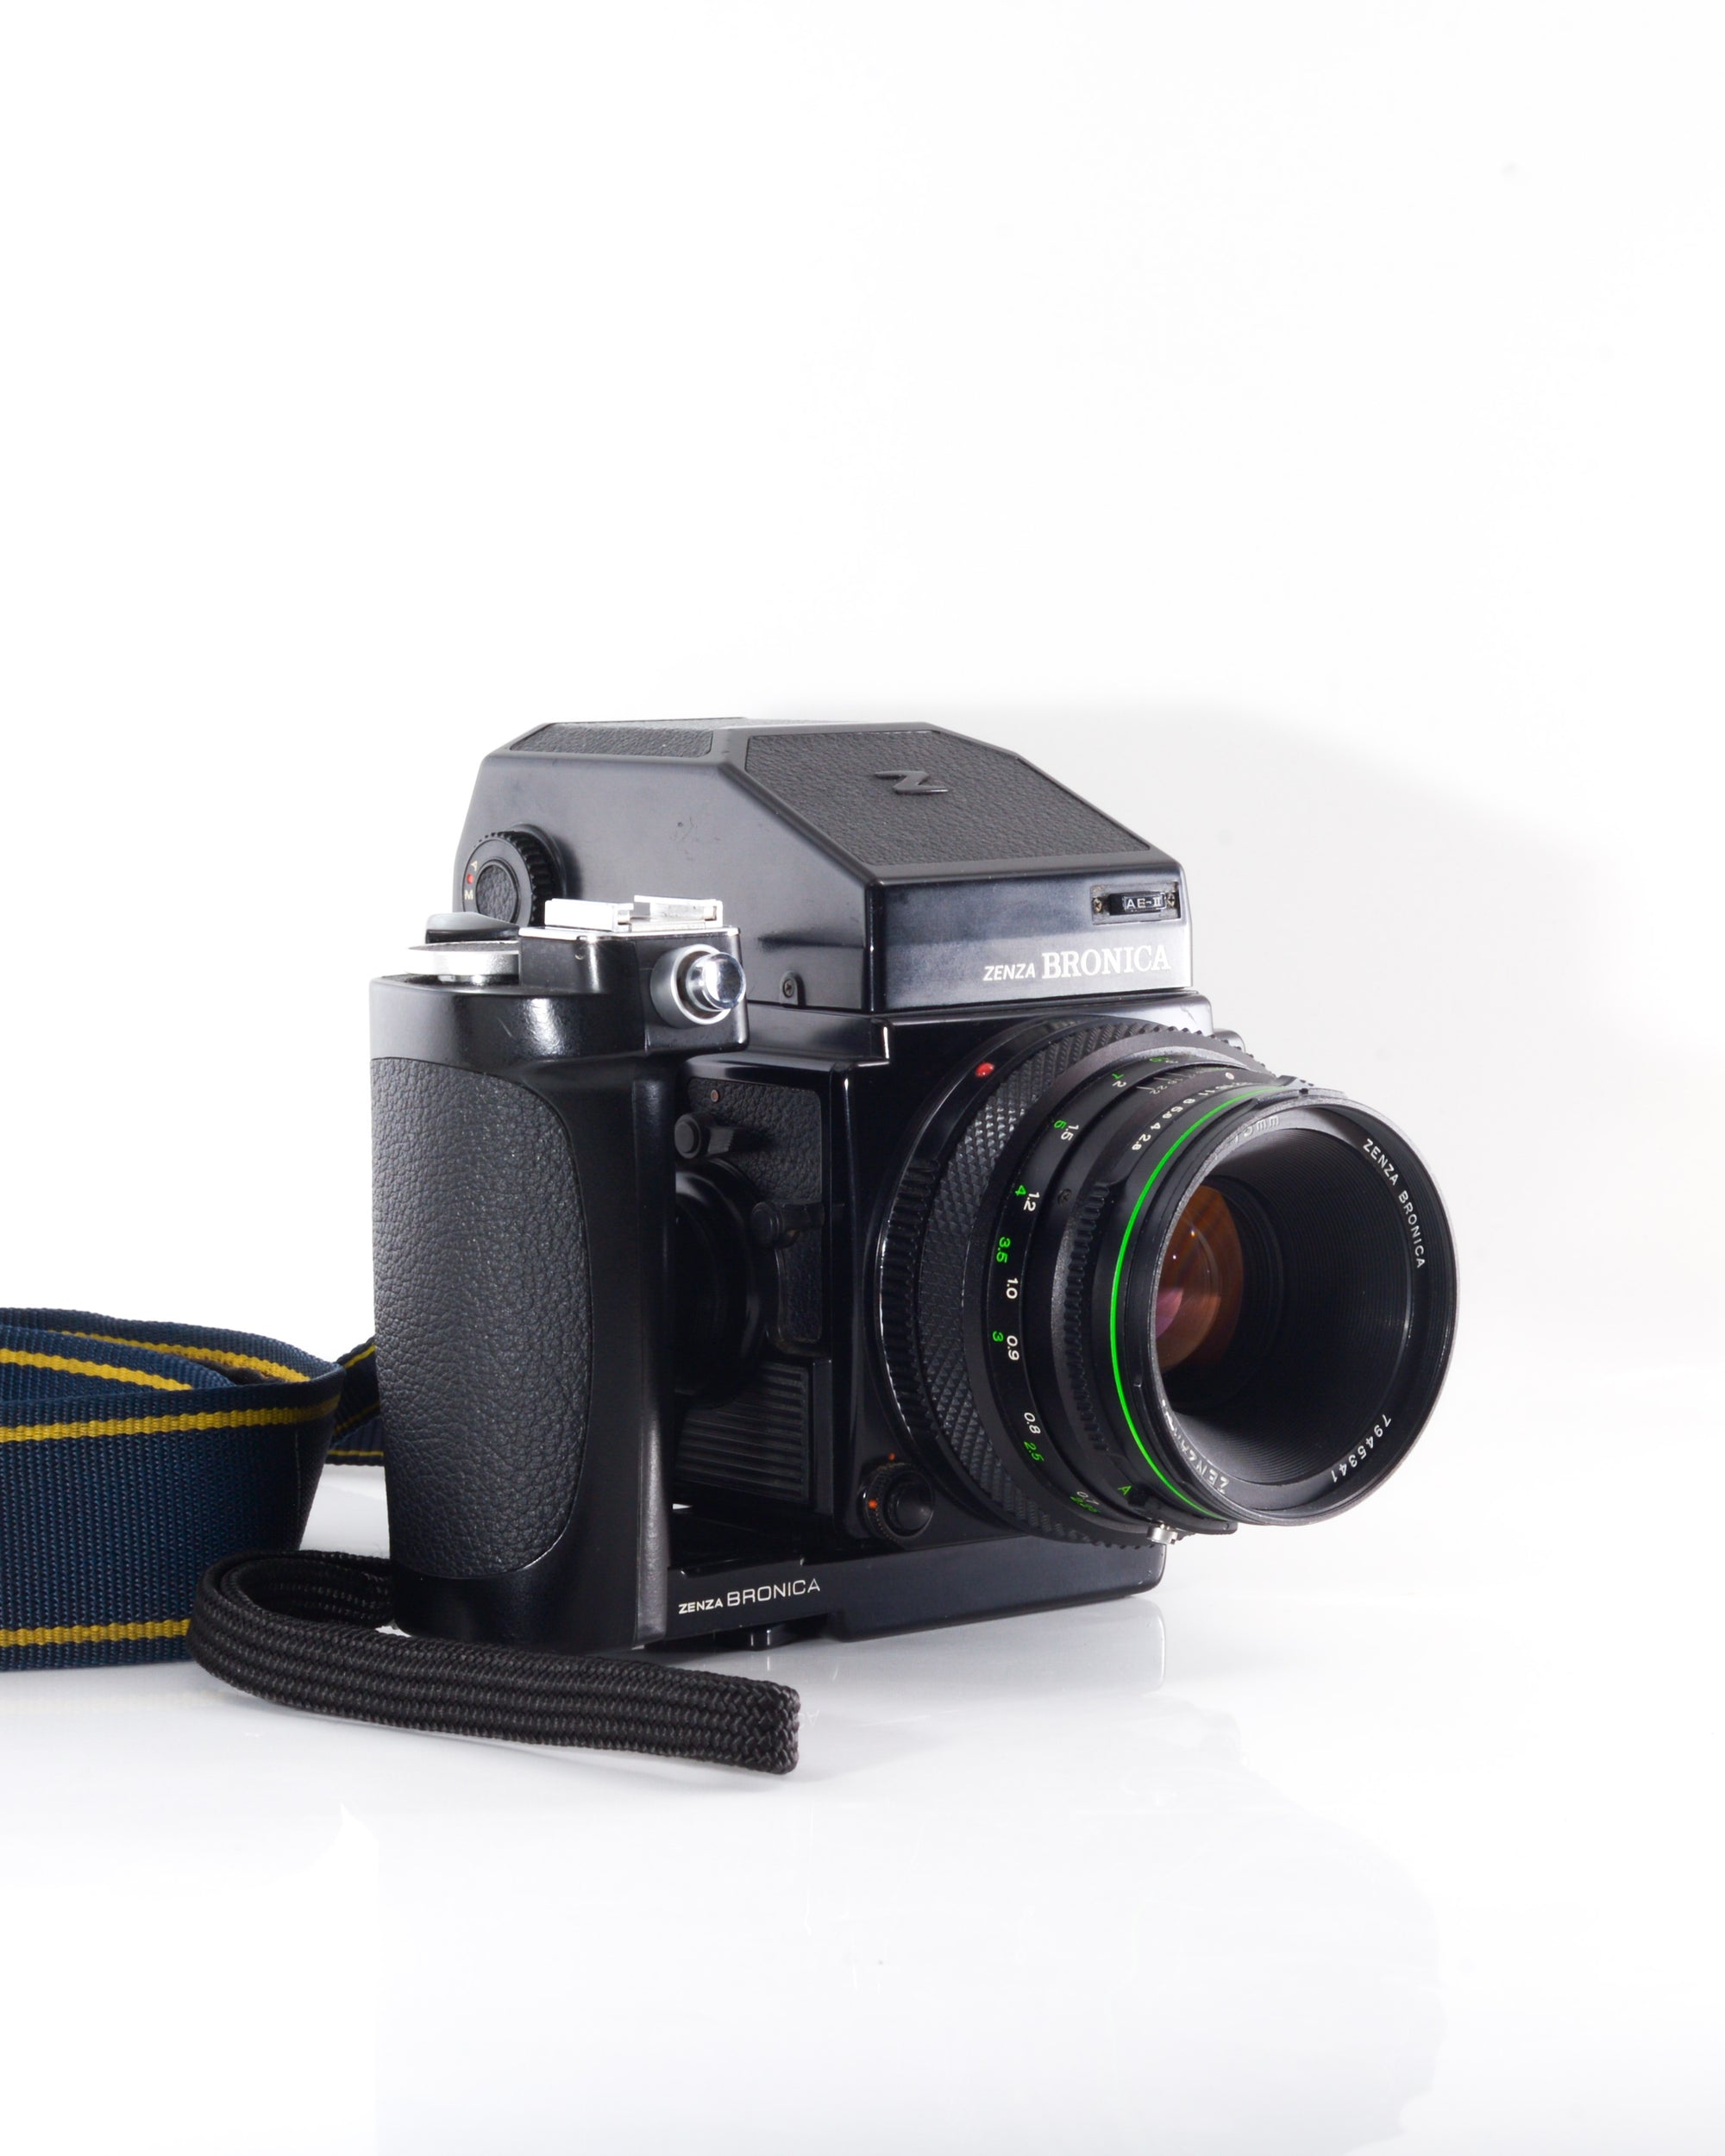 Bronica ETRS Medium Format film camera with 75mm f2.8 lens